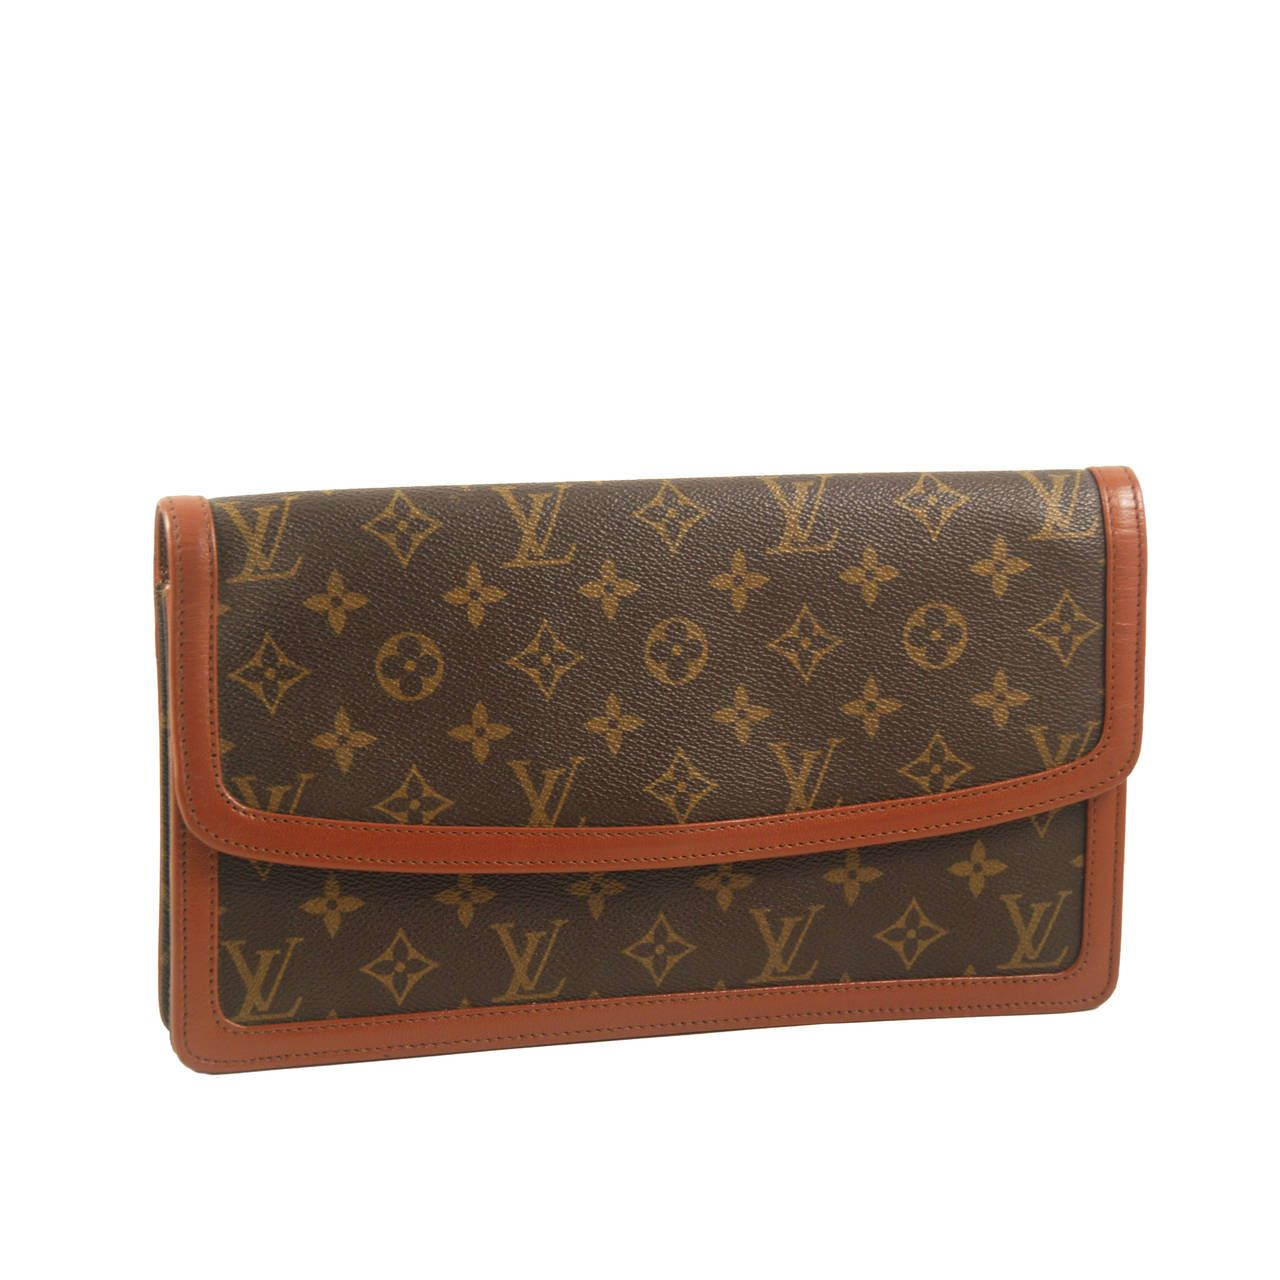 Vintage Louis Vuitton Clutch From A